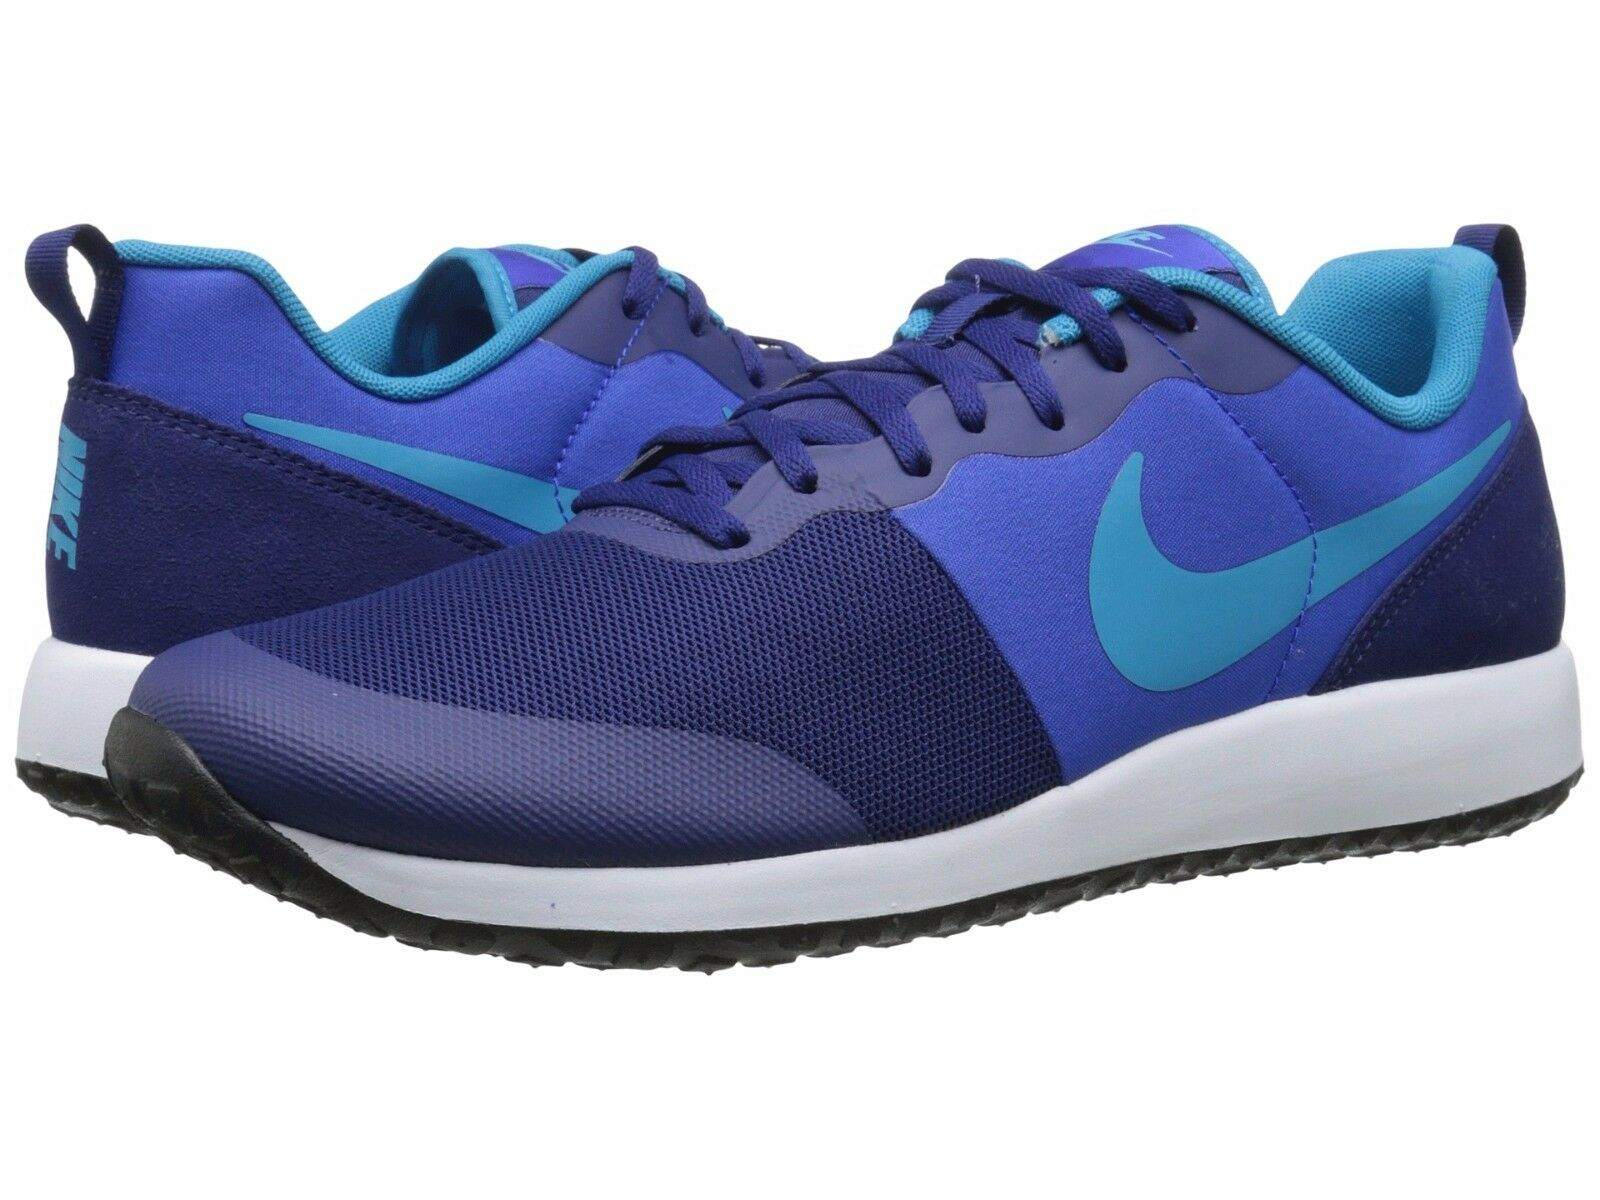 Men's Nike Elite Shinsen Casual Shoes, 801780 441 Sizes 10-13 Loyal Blue/Blue L